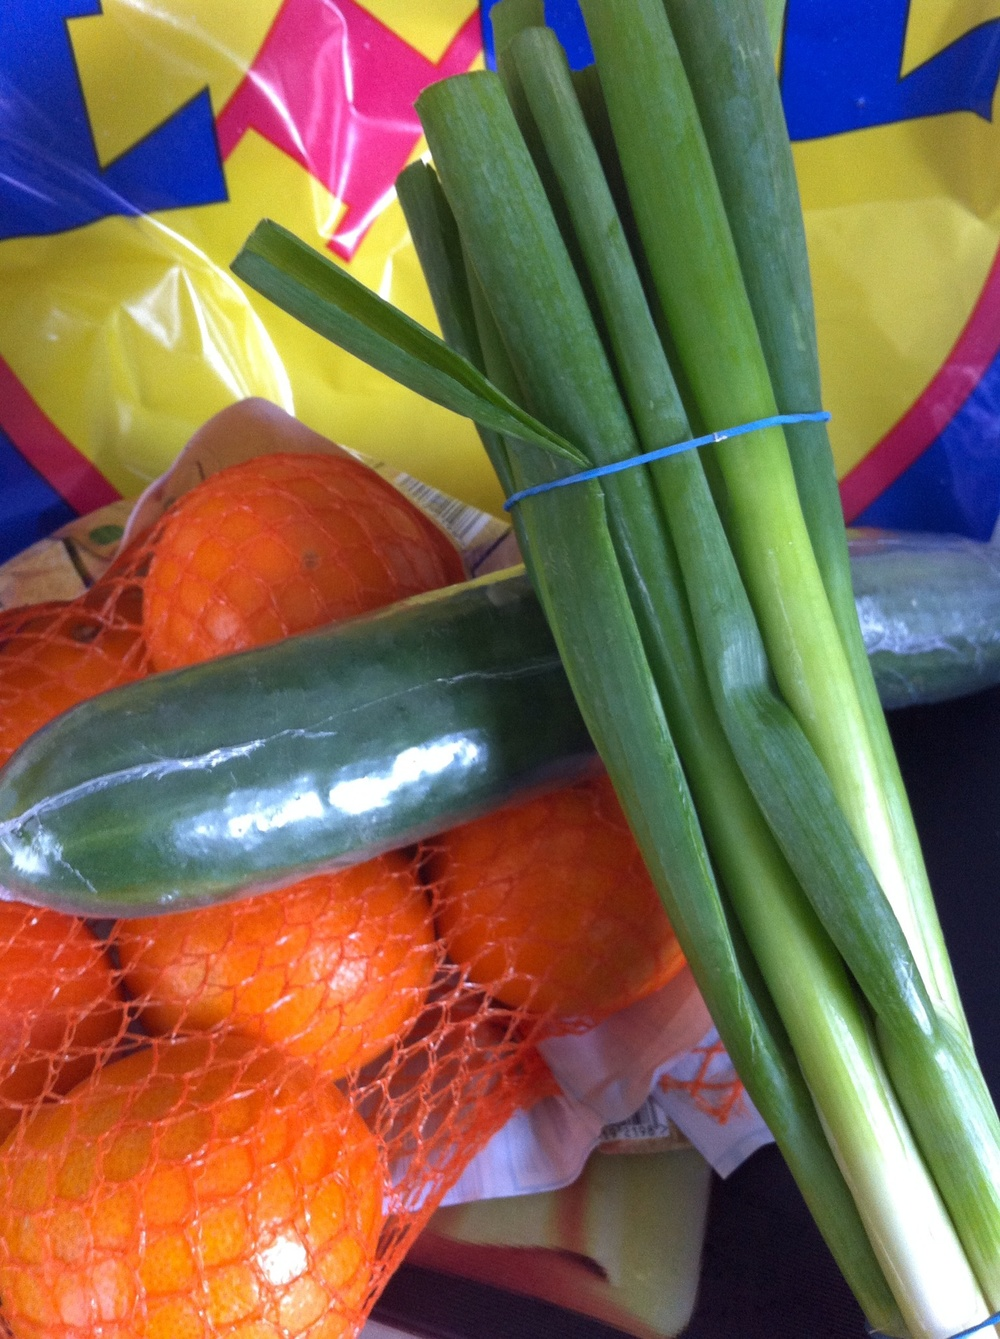 clementines £1.99.  Spring onions 73p.  Cucumber 29p